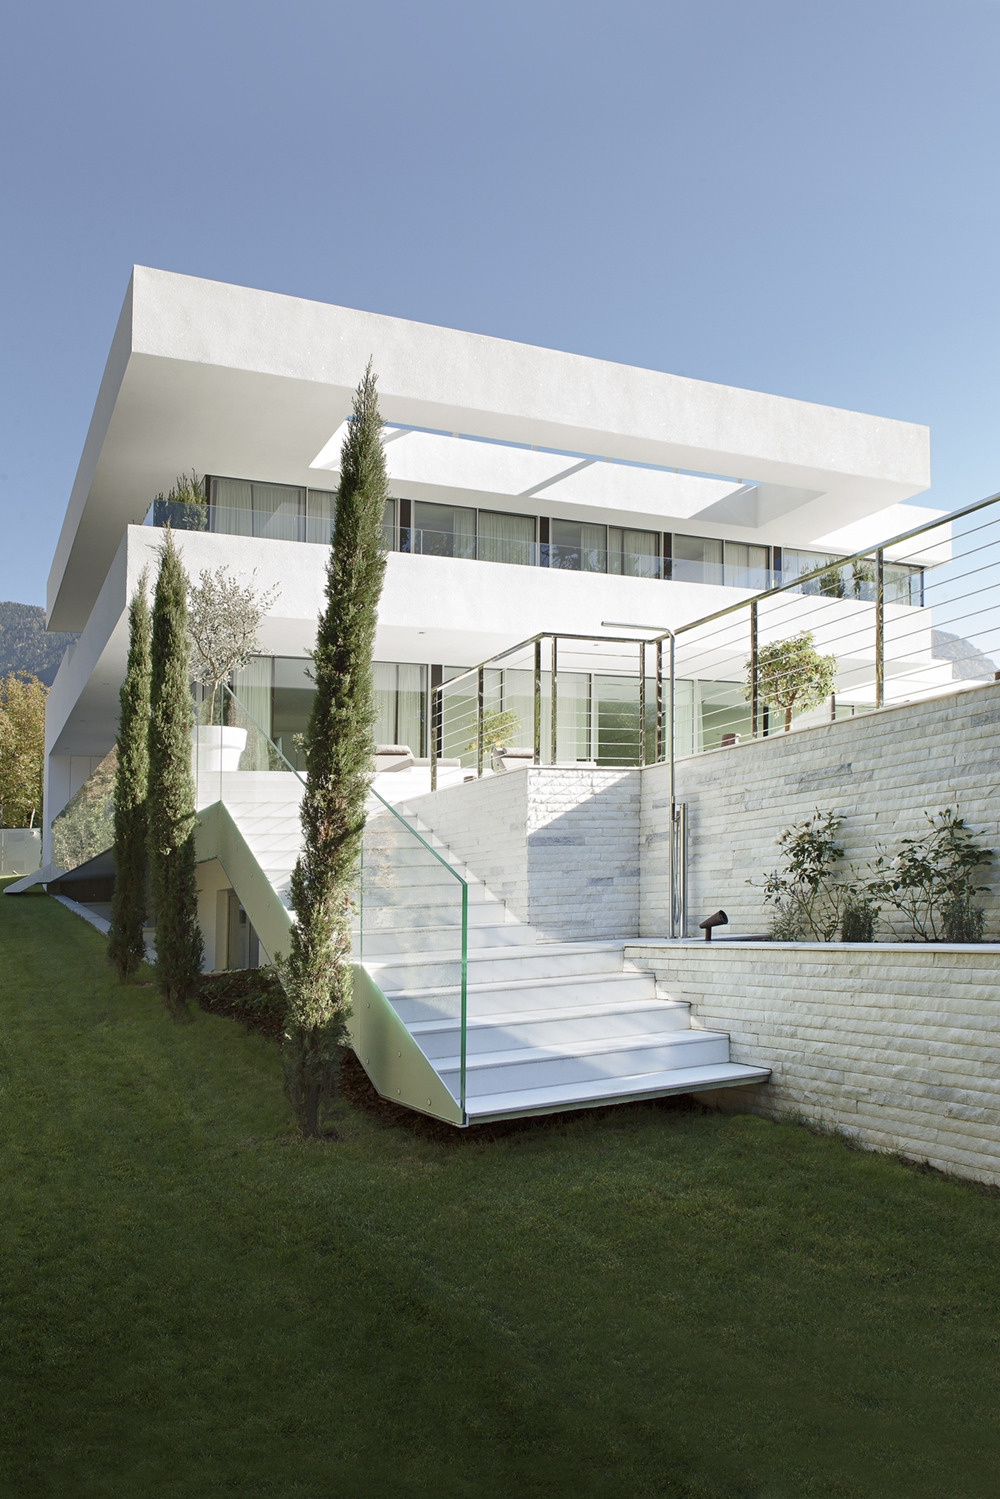 The Most Beautiful Bungalow In the World Best Of Most Beautiful Houses In the World House M